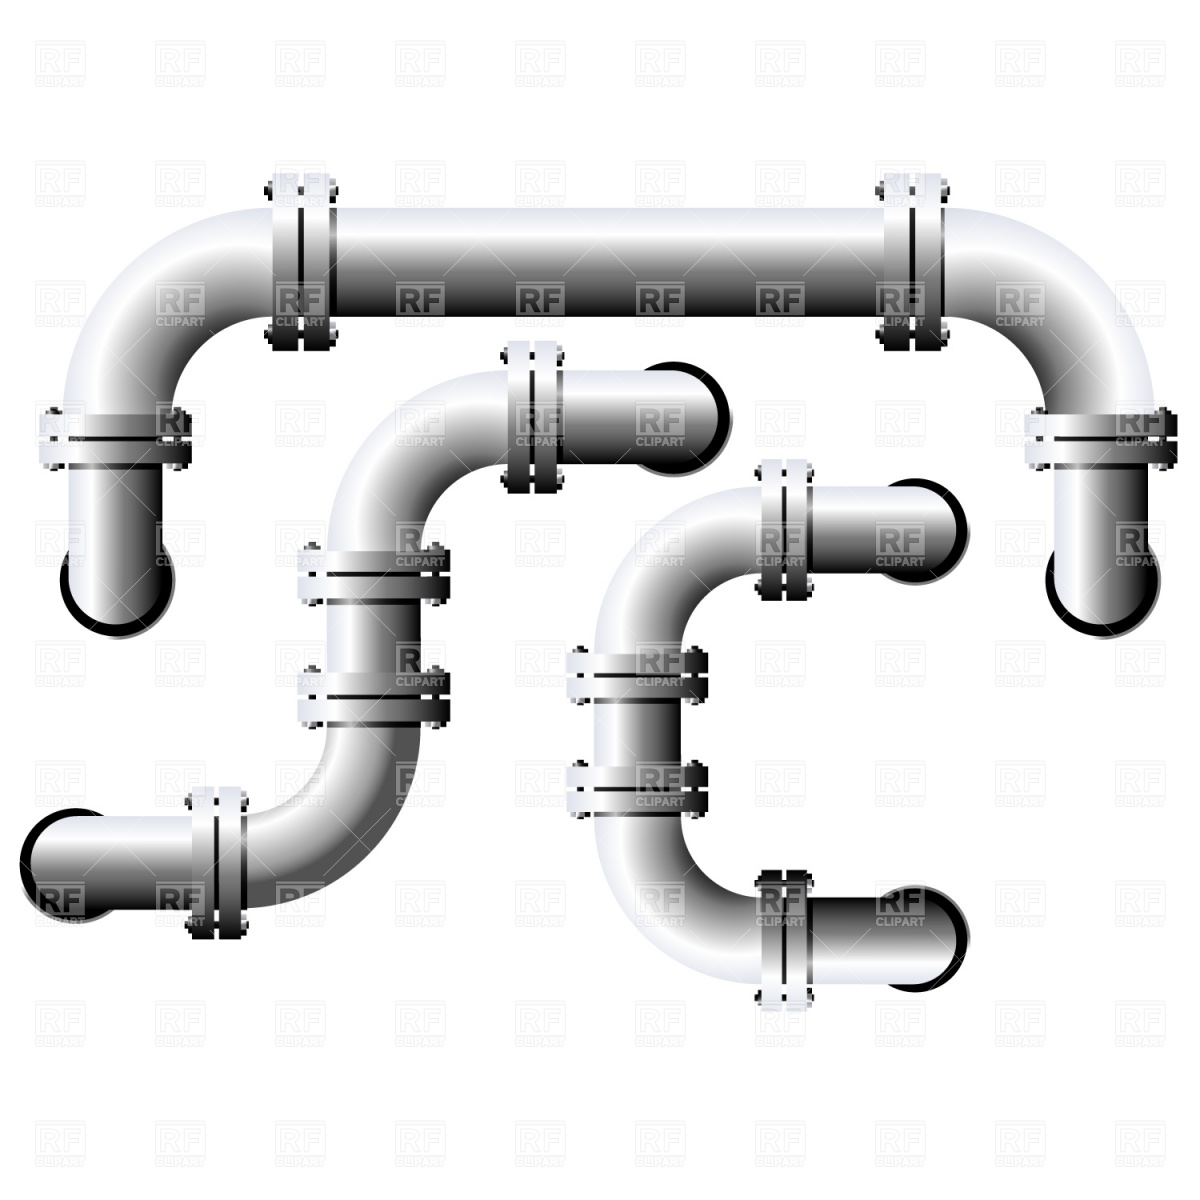 Plumbing pipe clipart clipart suggest for What pipes to use for plumbing